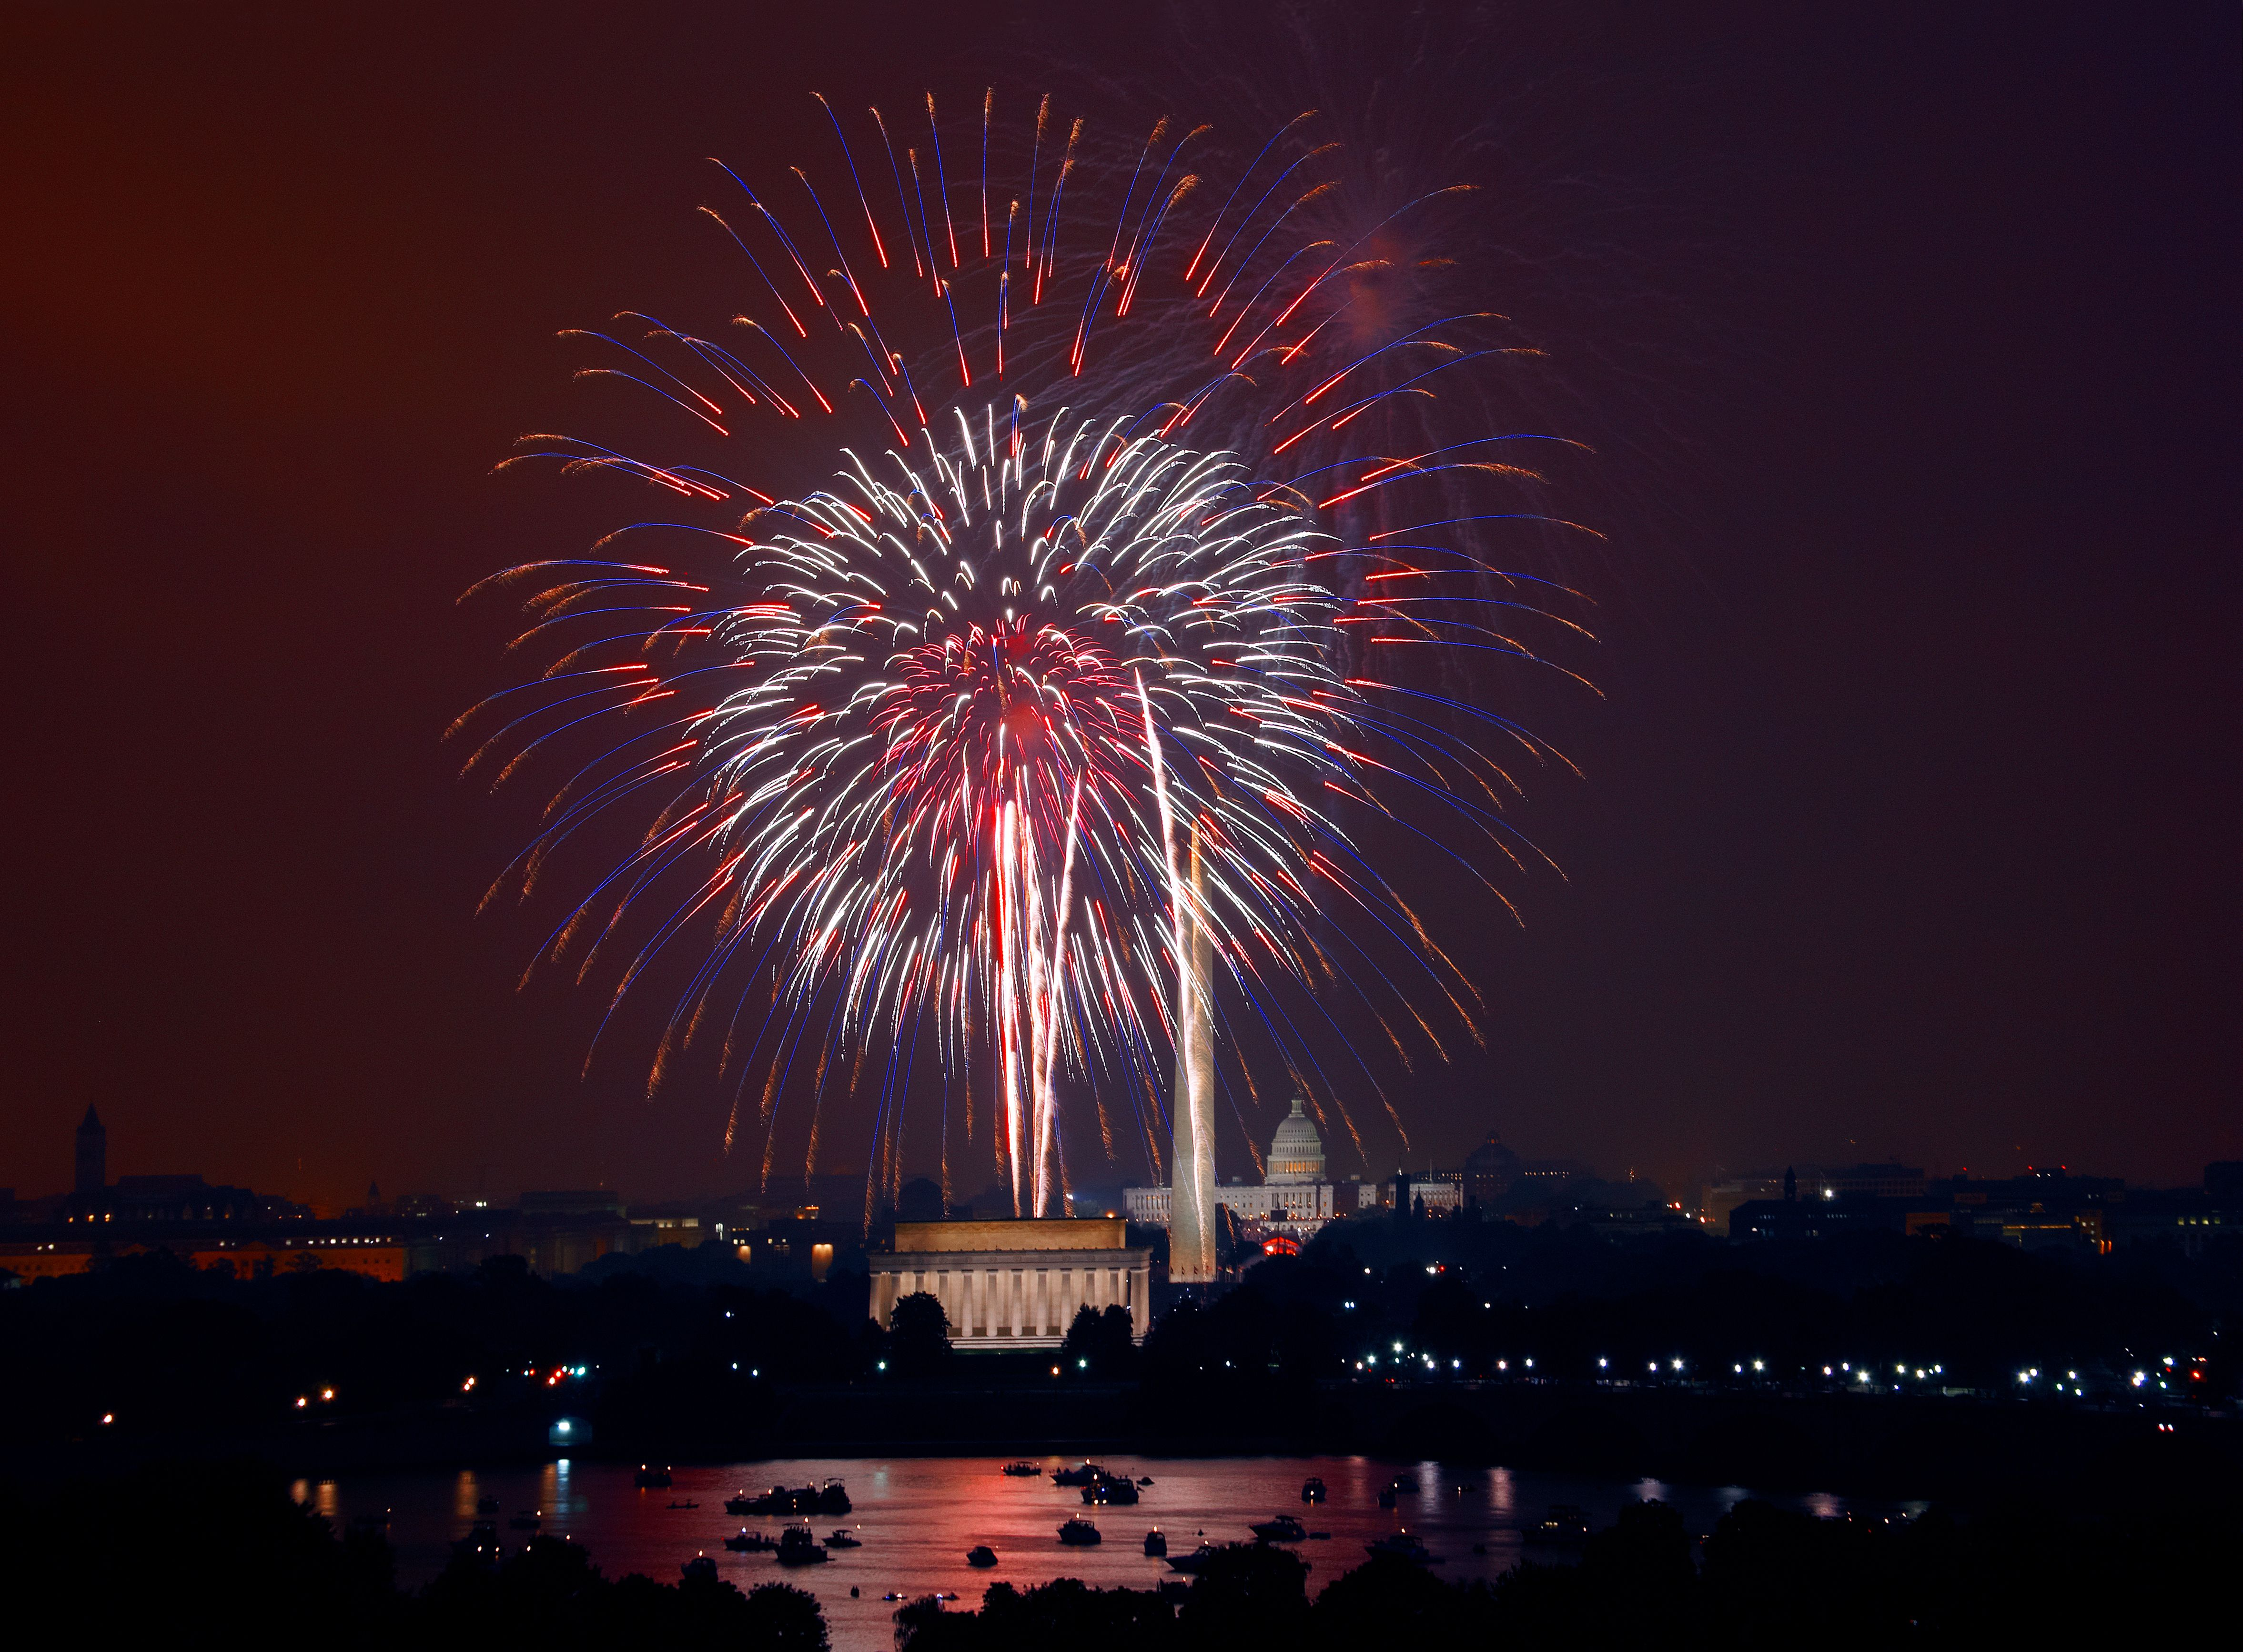 Picture Of The Day For December 31 2016 By Wikipedia Besides New Year S Eve Fireworks Are Often Used To Celebra 4th Of July Fireworks Fireworks Photo Fireworks